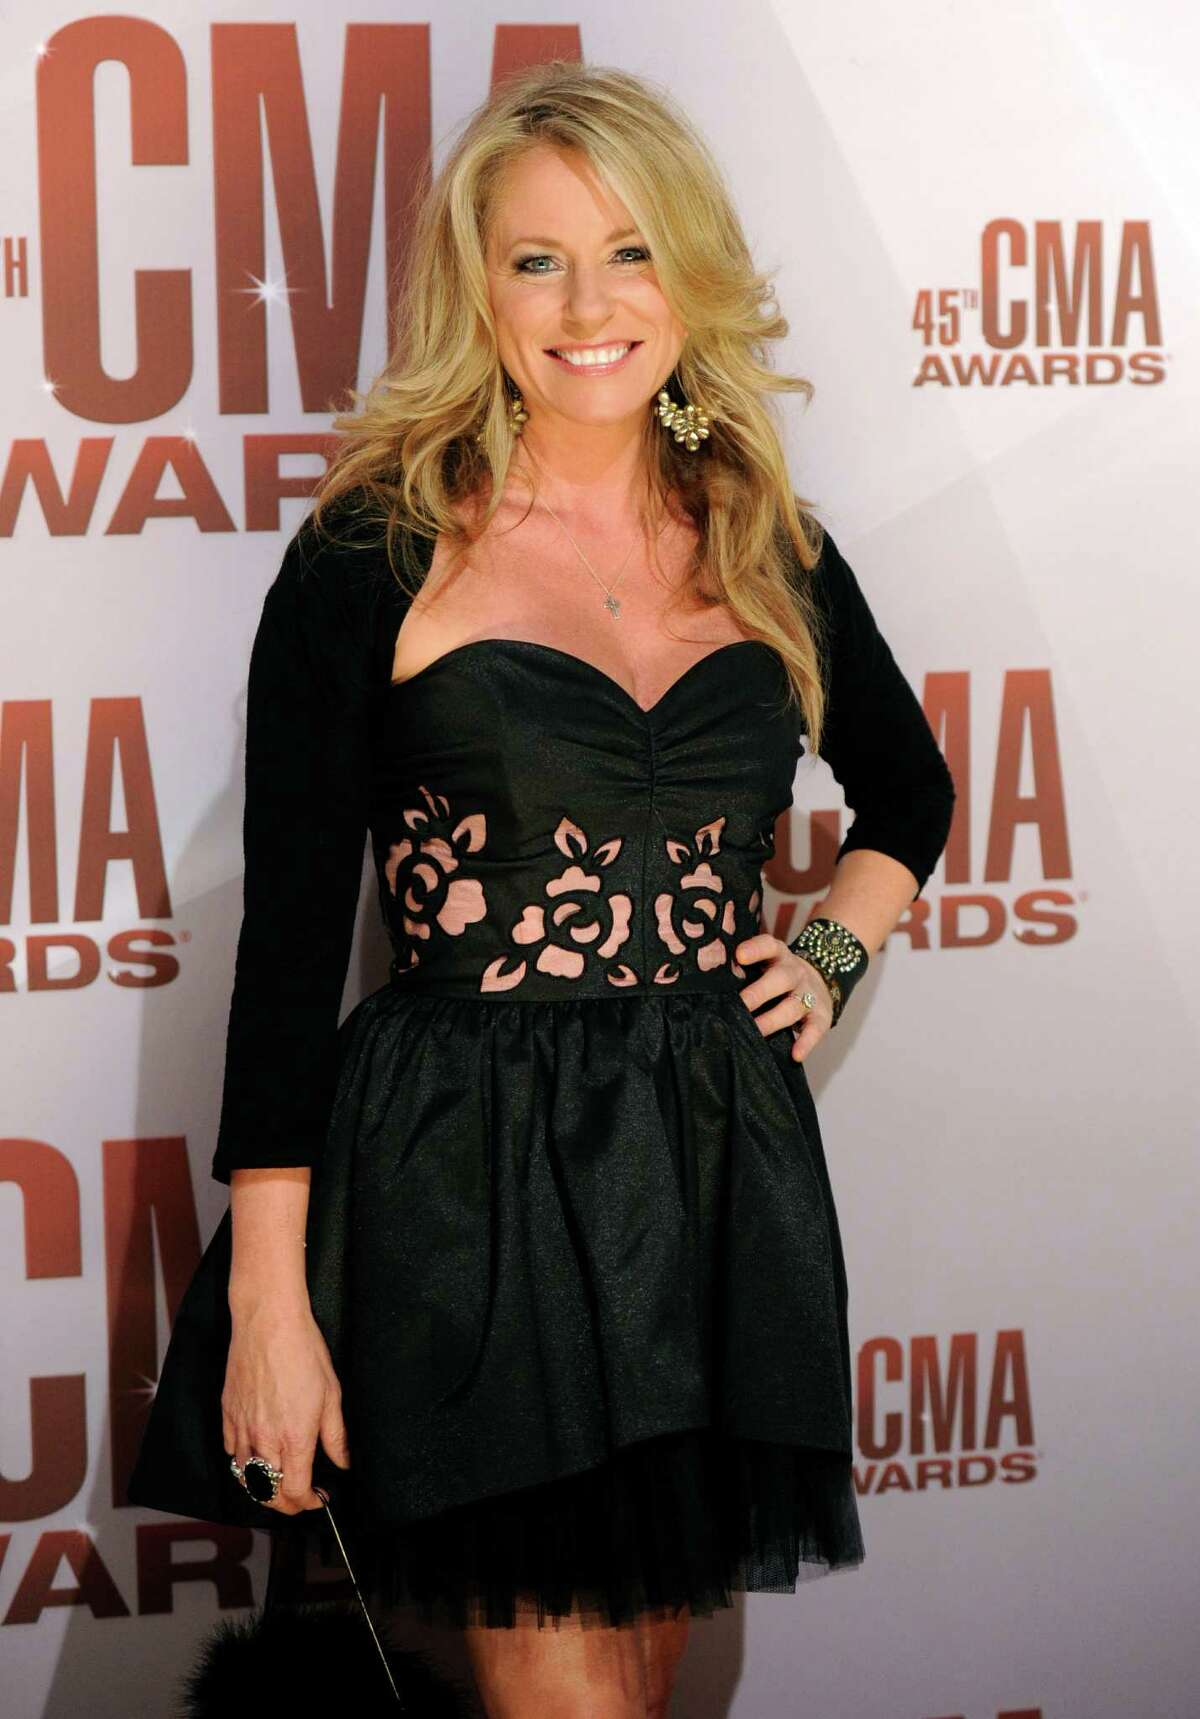 FILE - In this Nov. 9, 2011 file photo, Deana Carter arrives at the 45th Annual CMA Awards in Nashville. Court records show Carter filed for separation from her husband Brandon Malone in Los Angeles on Tuesday, Nov. 13, 2012. The couple were married in October 2009, but separated in August 2011, according to CarterA'A?'s filing citing irreconcilable differences. (AP Photo/Evan Agostini, File)